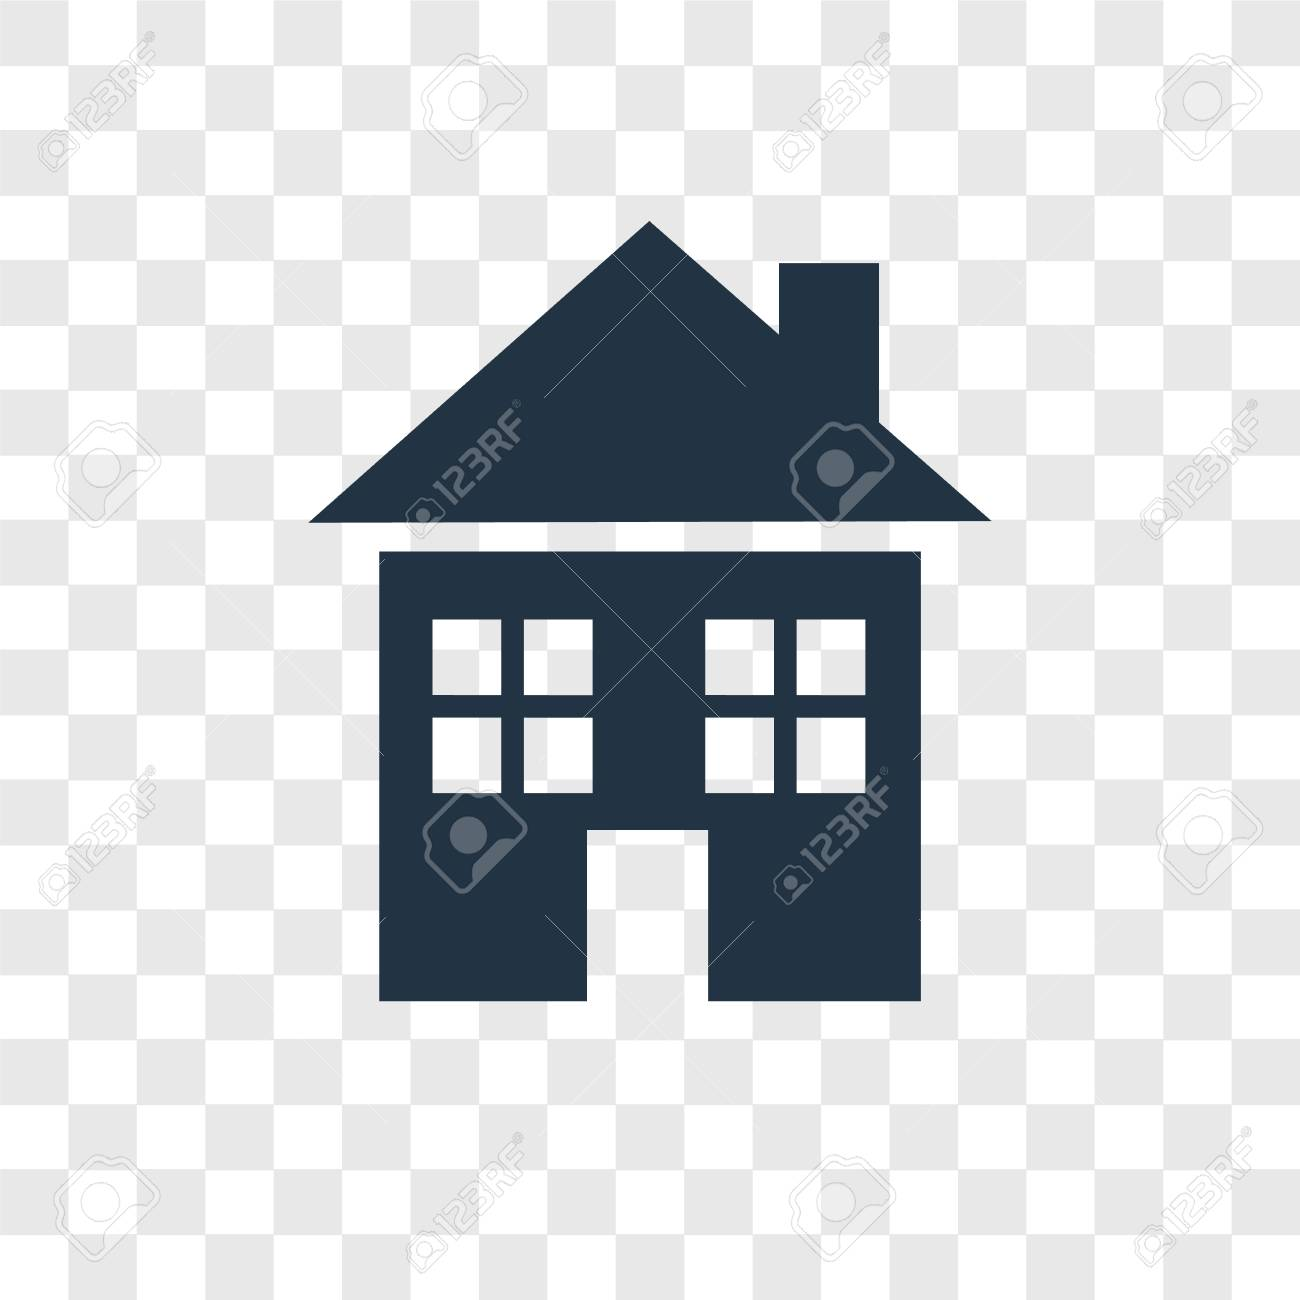 House Vector Icon Isolated On Transparent Background House Transparency Royalty Free Cliparts Vectors And Stock Illustration Image 112485200